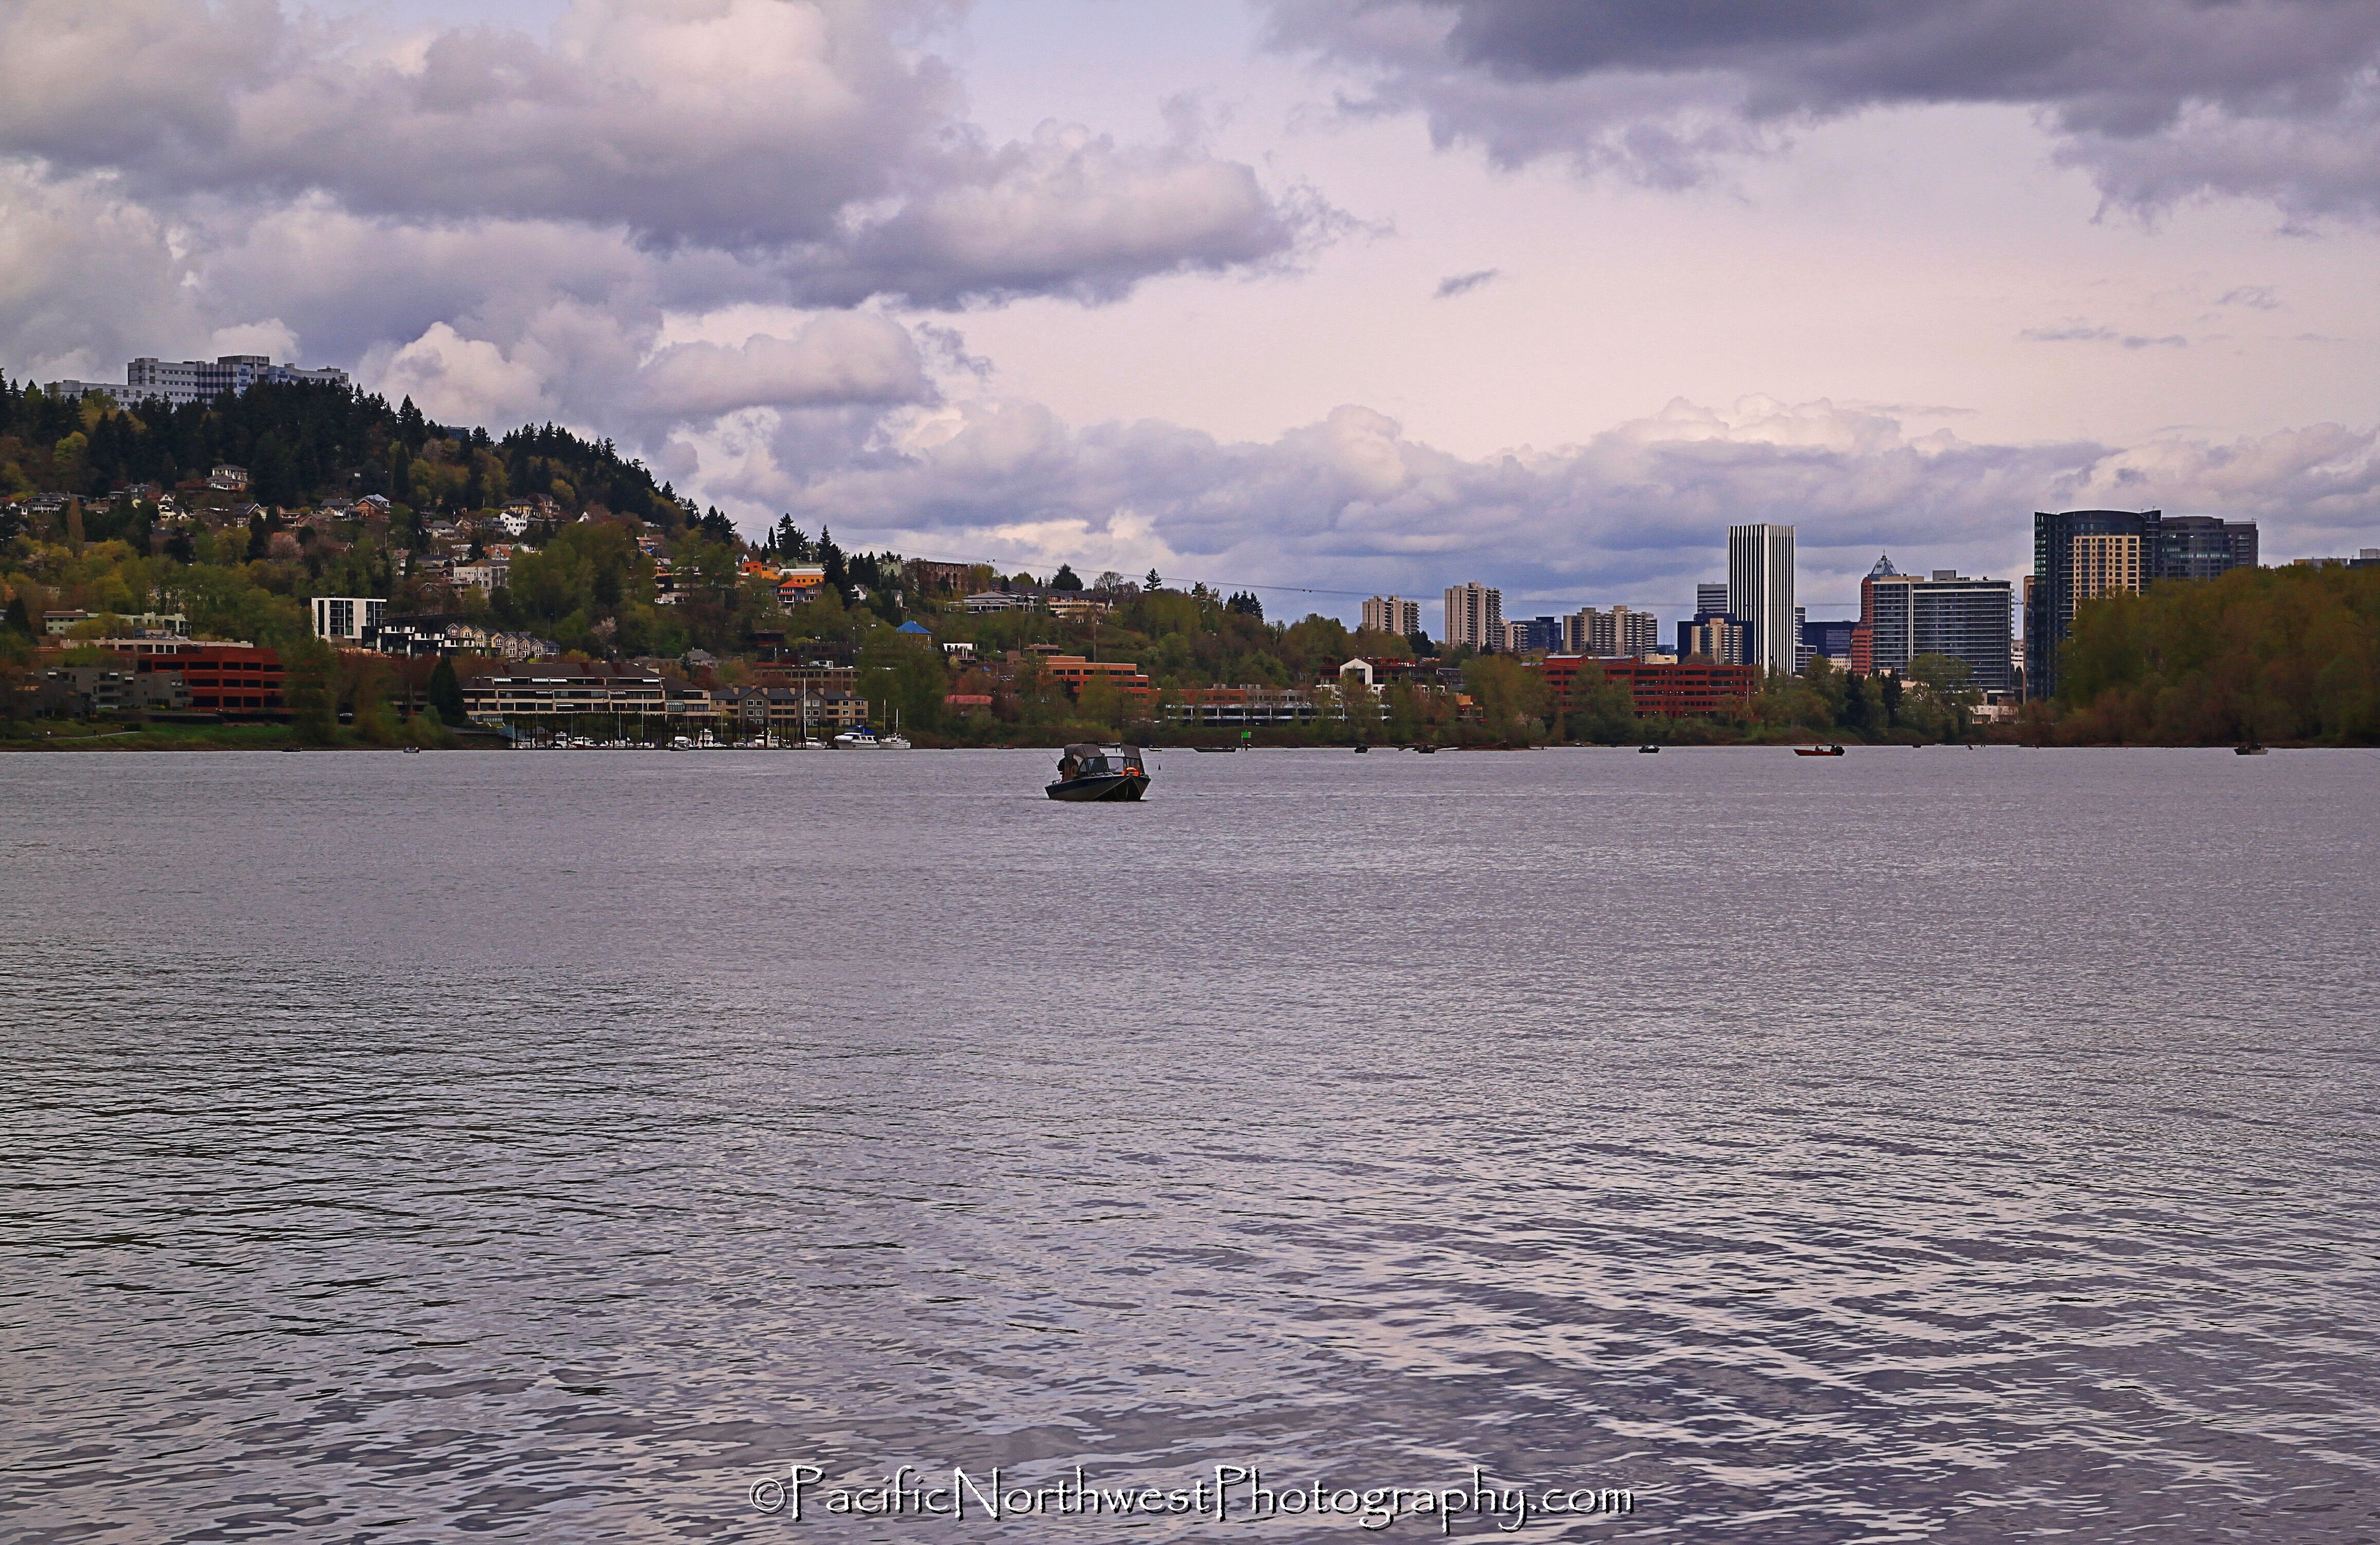 Willamette river and Downtown Portland